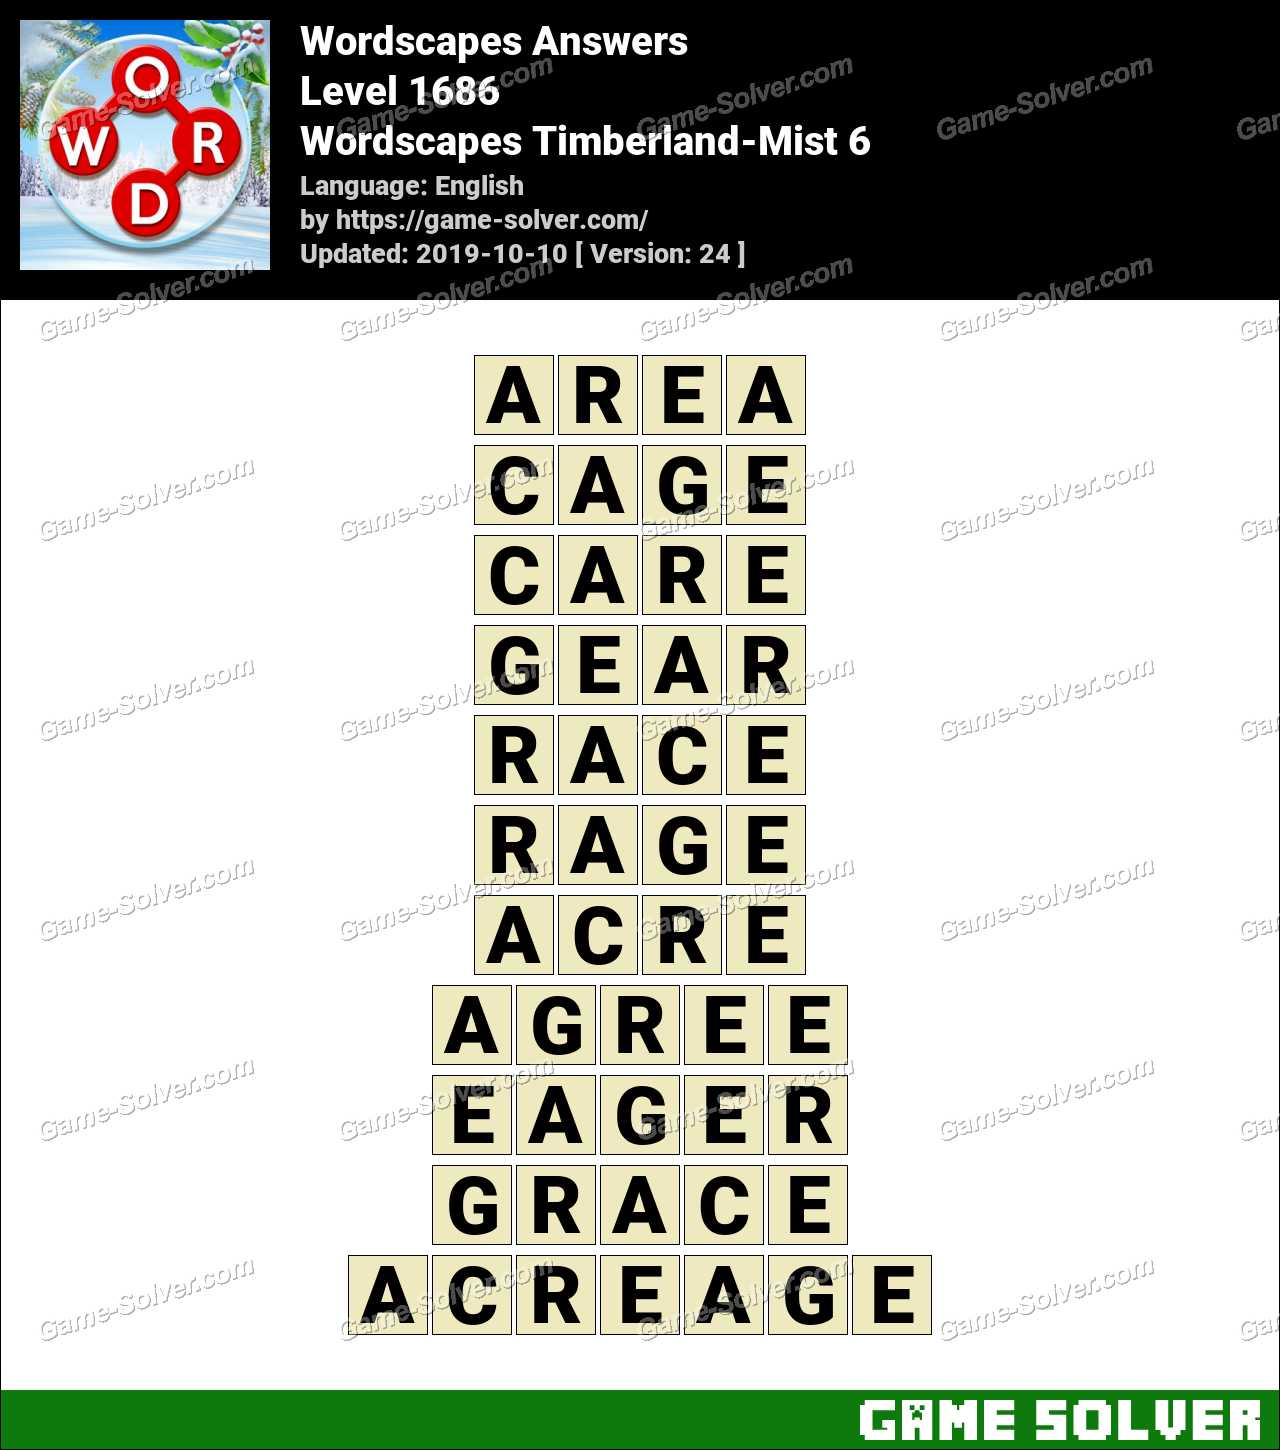 Wordscapes Timberland-Mist 6 Answers